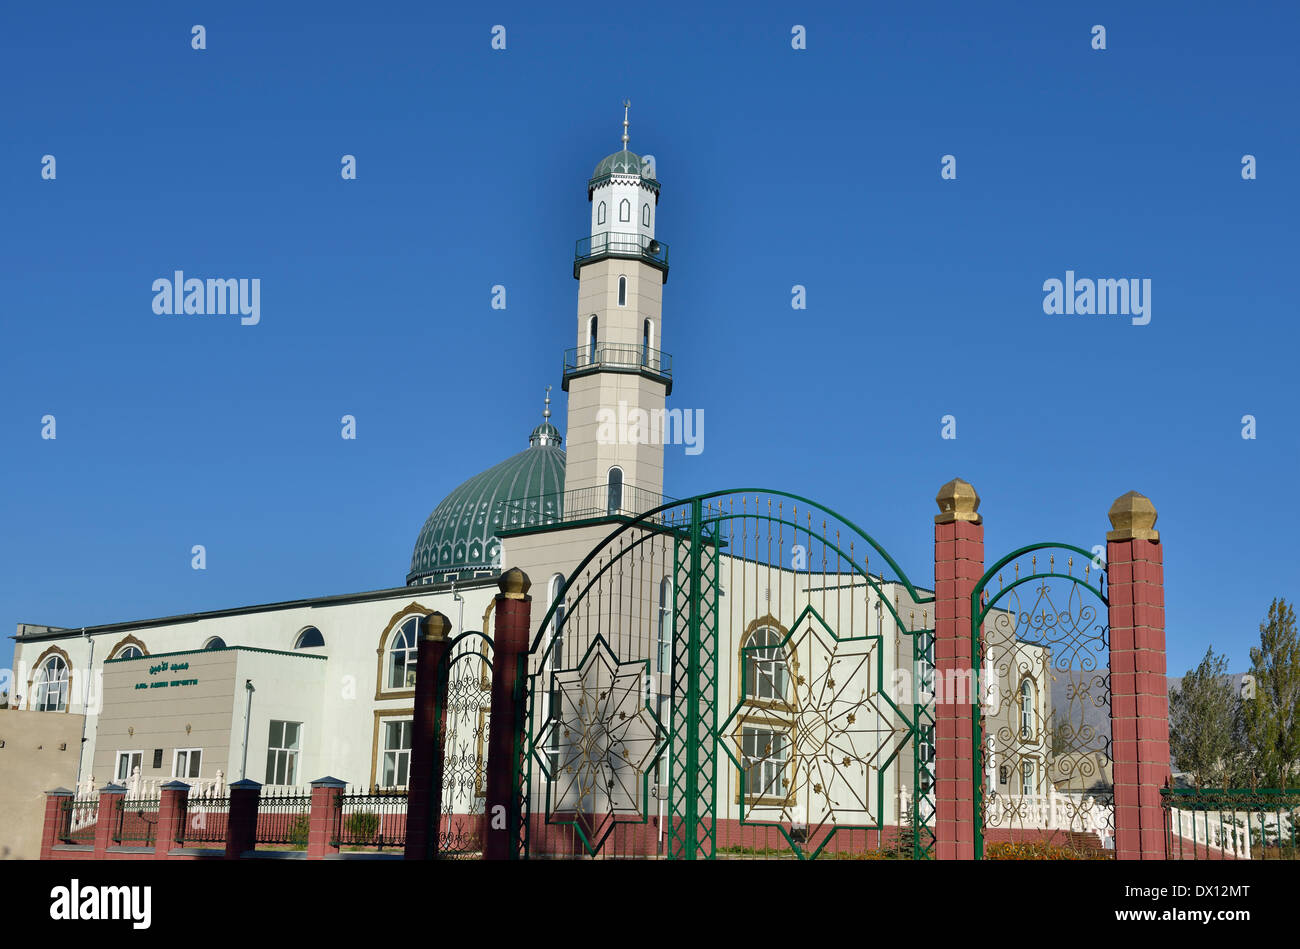 Mosque and minaret, Balykchy, Kyrgyzstan - Stock Image